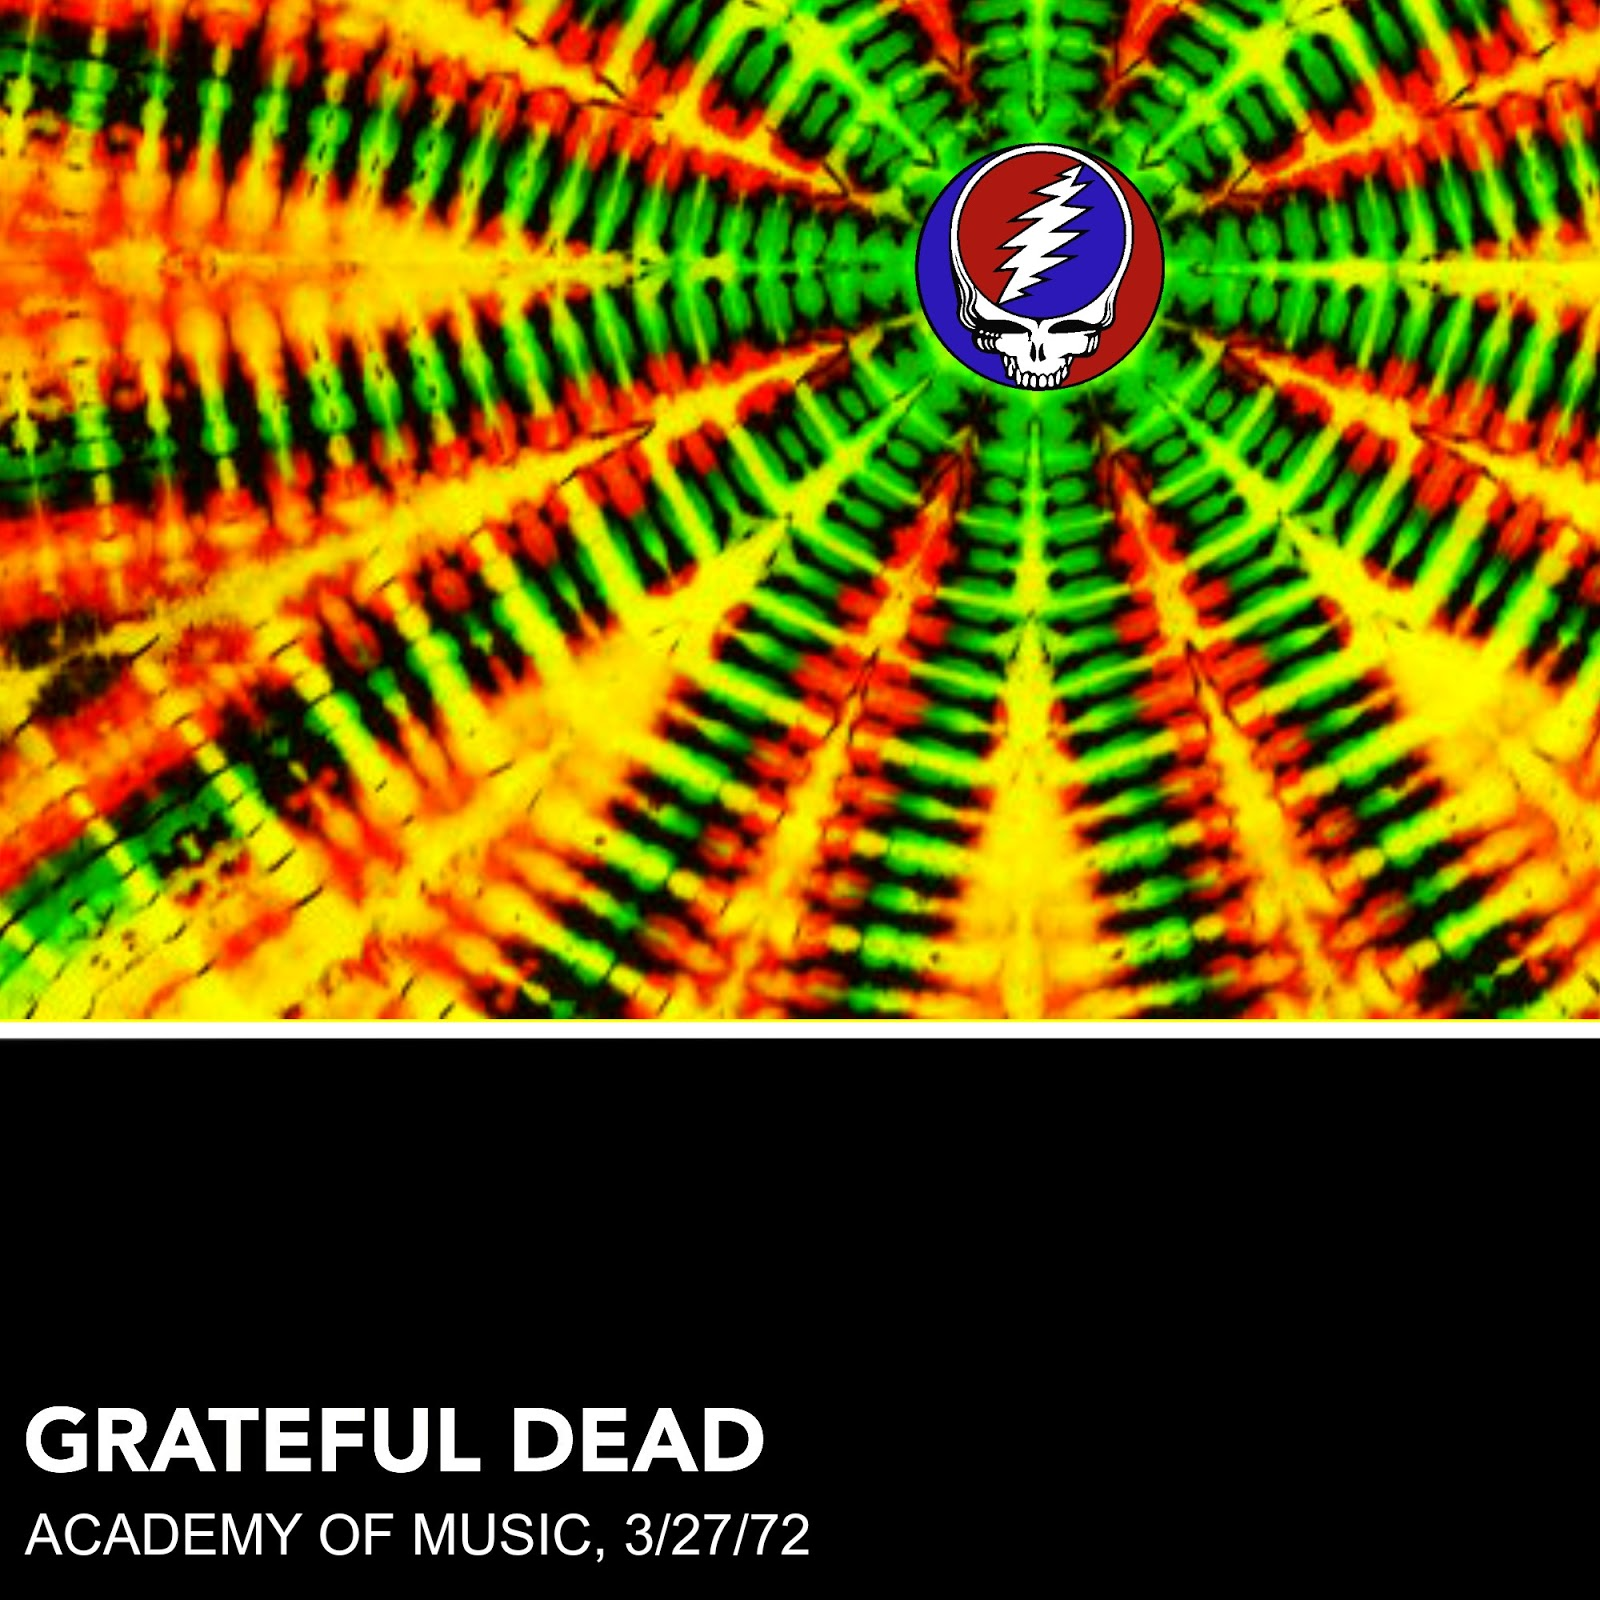 Grateful Dead 3/27/72: Academy of Music, New York, NY -1972-03-27